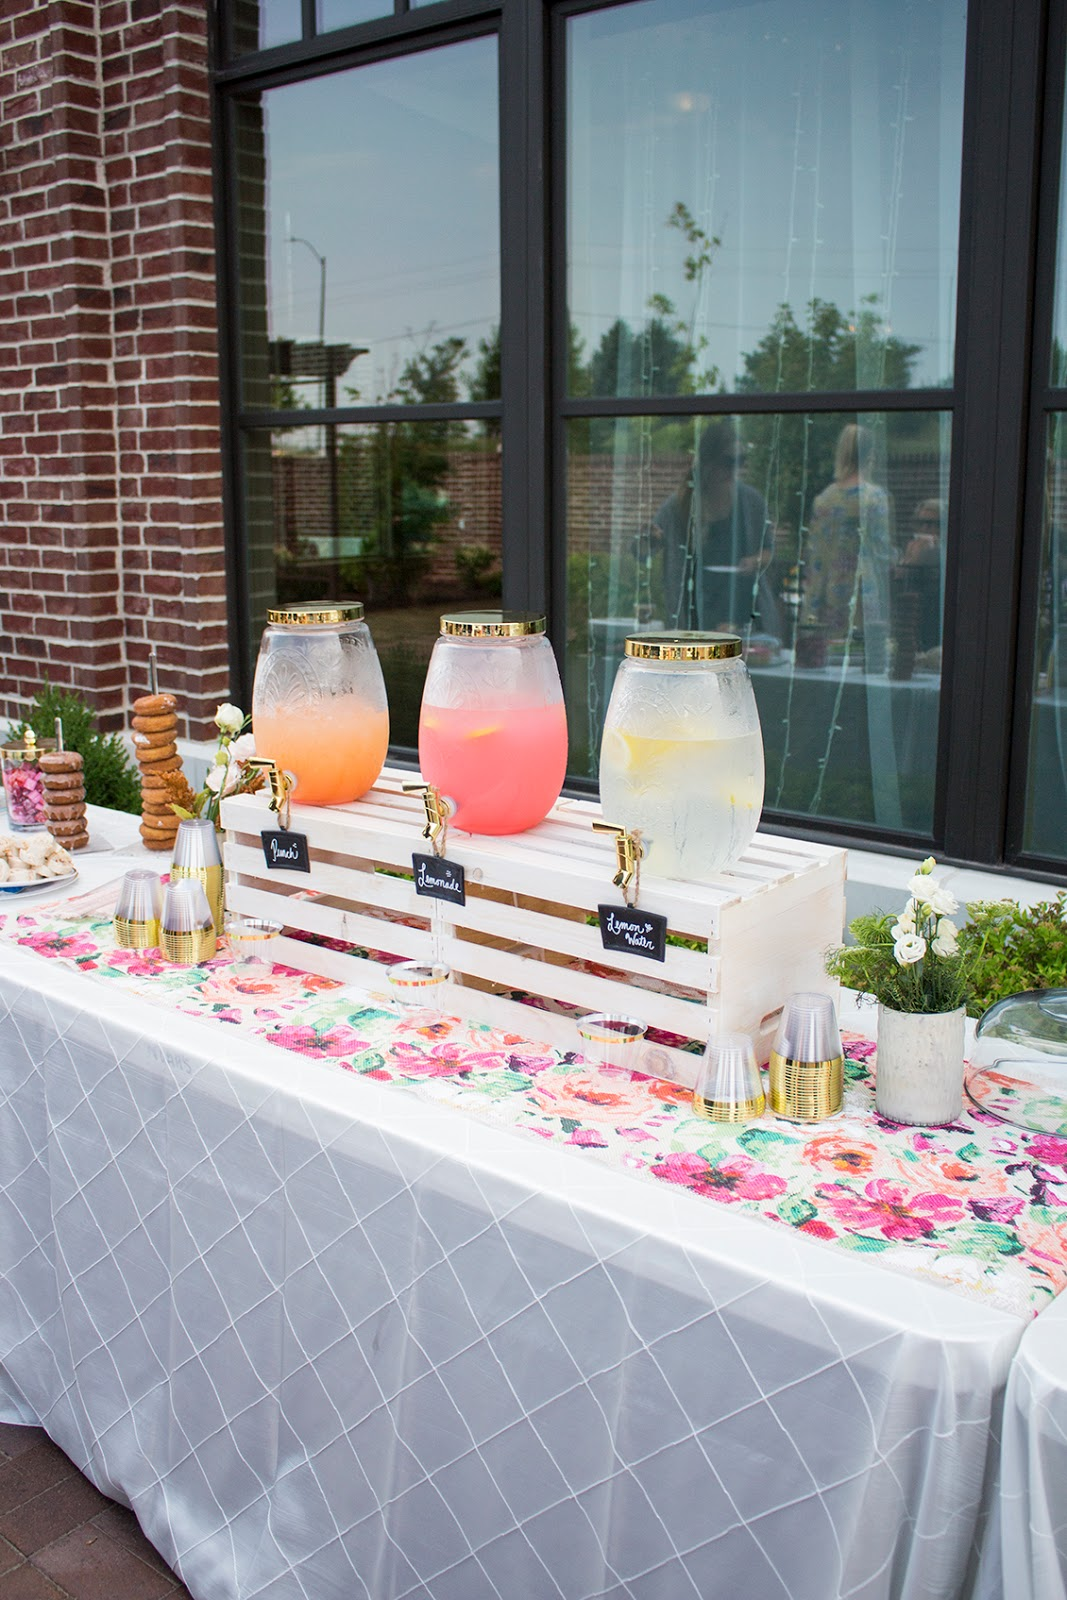 Garden Party Baby Shower - Tay Meets World